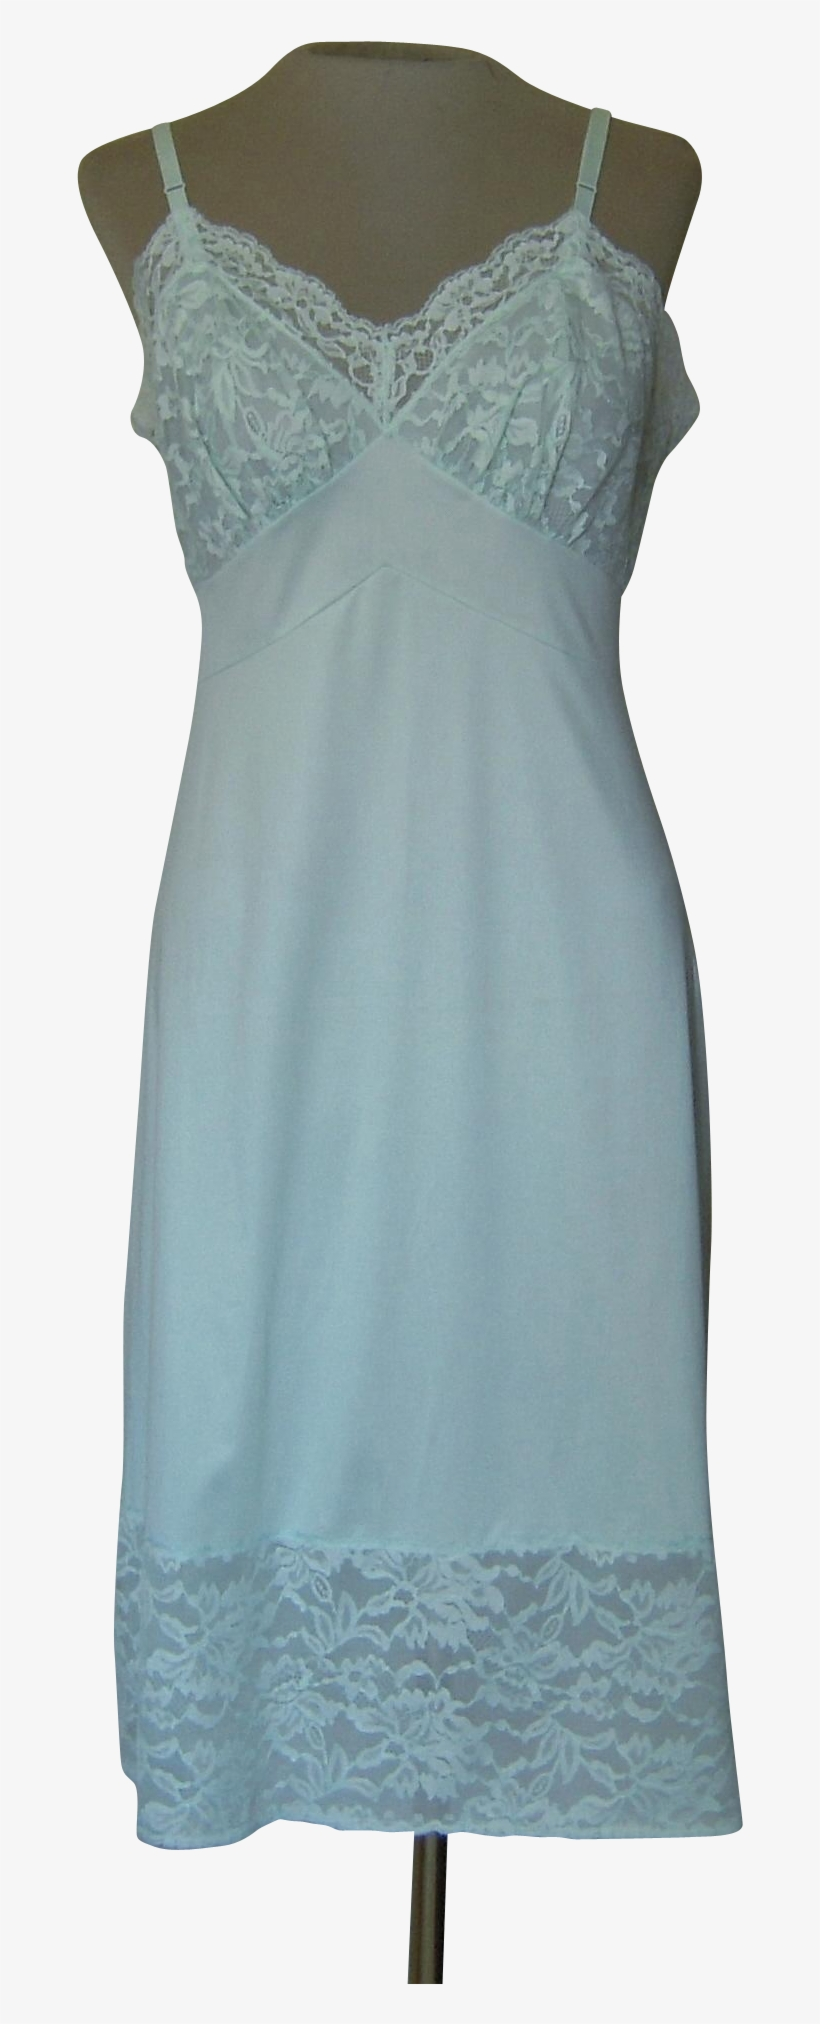 This Vintage Vanity Fair Light Green Slip Is Very Pretty Cocktail Dress Transparent Png 1943x1943 Free Download On Nicepng